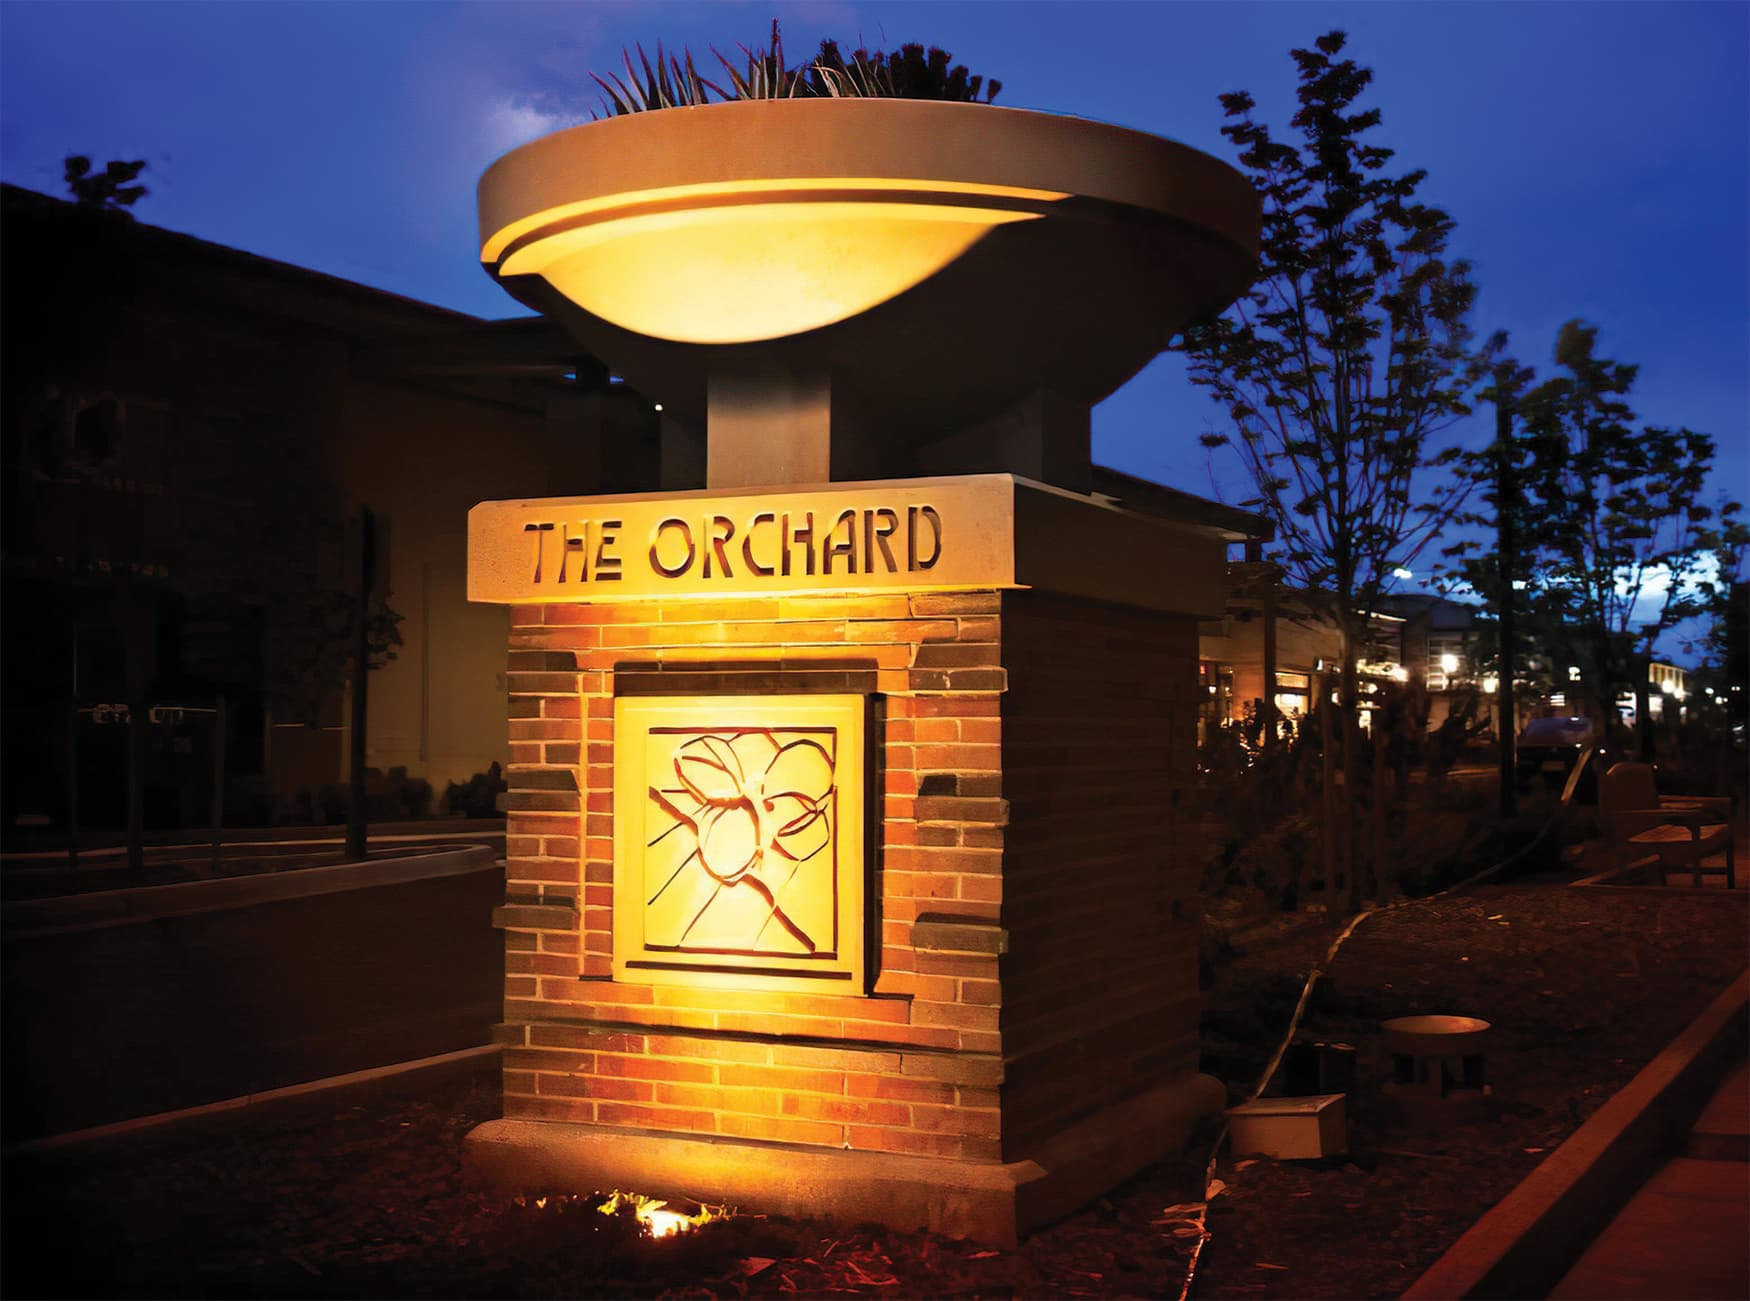 RSM Design worked to create a wayfinding system and Environmental Graphic Design program for The Orchard, a mixed-use retail project in Westminster, Colorado. Project Monument Design.